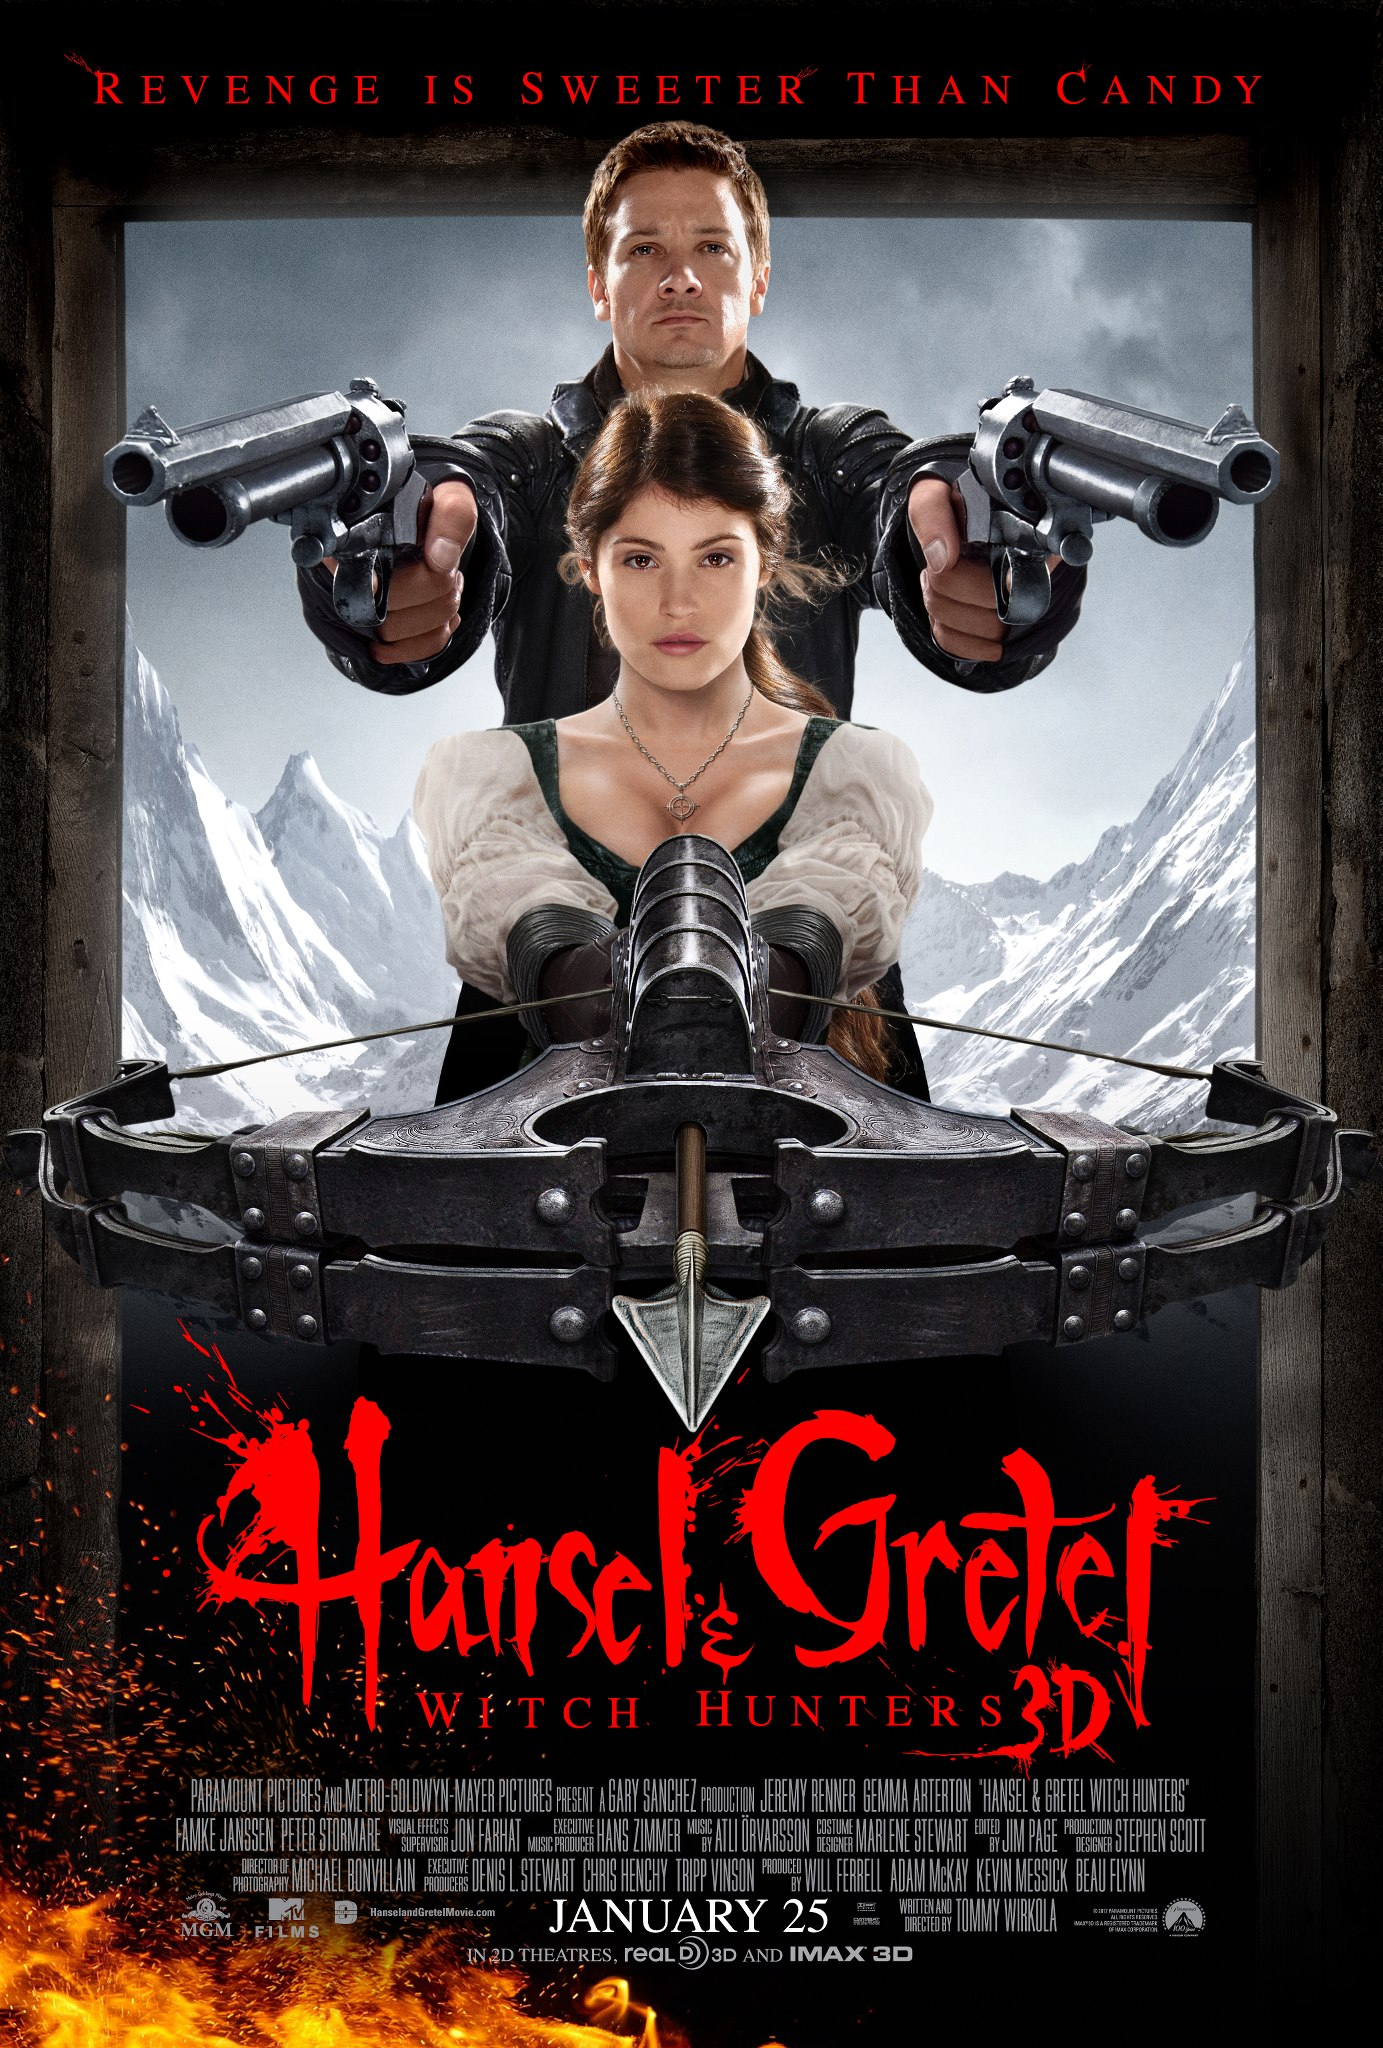 hansel_and_gretel_witch_hunters_poster_2013_01.jpg